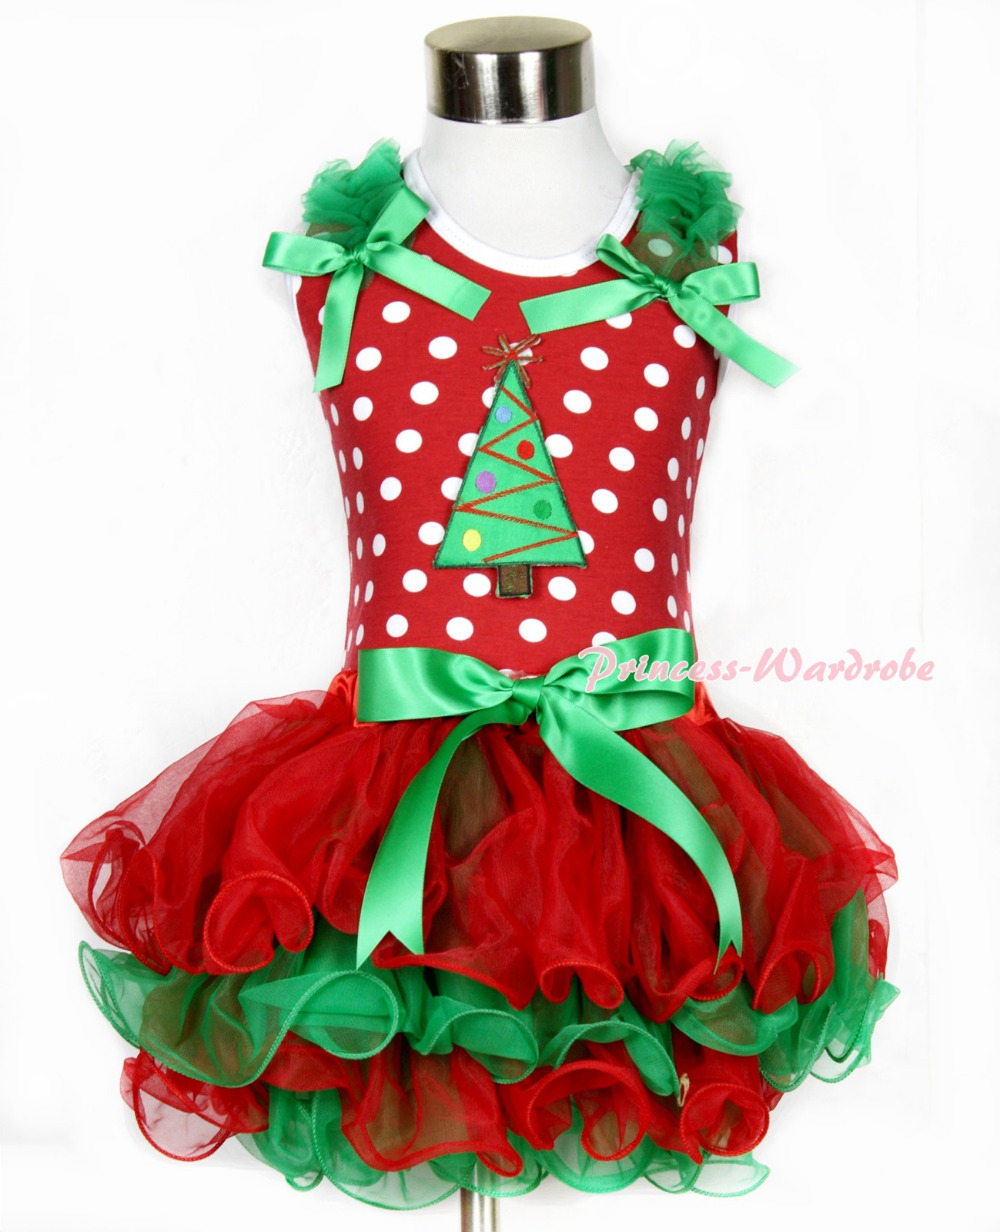 Xmas Minnie Dots Tank Top With Kelly Green Ruffles Kelly Green Bow & Christmas Tree With Bow Red Green Petal Pettiskirt MAMH090 new 3d skull backpack shoulder bags for men printing backpack men punk rock school backpack for men casual school bags for boys